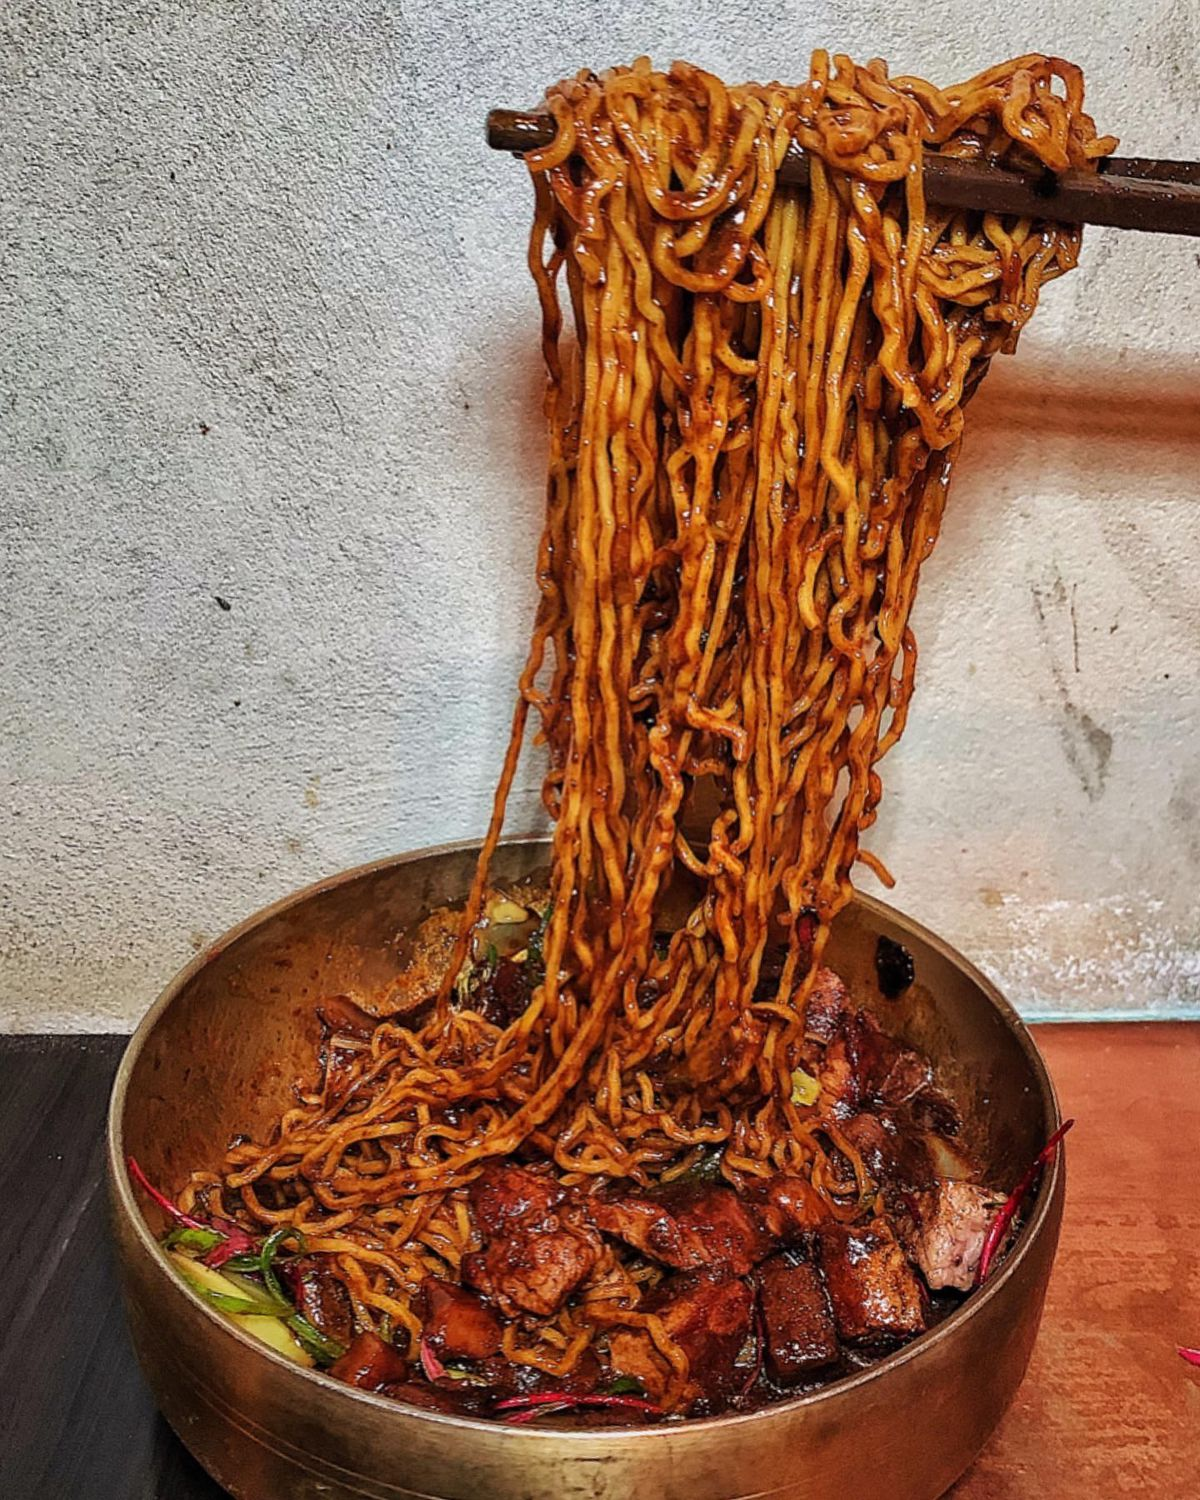 A metal bowl with noodles and steak inside, with noodles being pulled up.